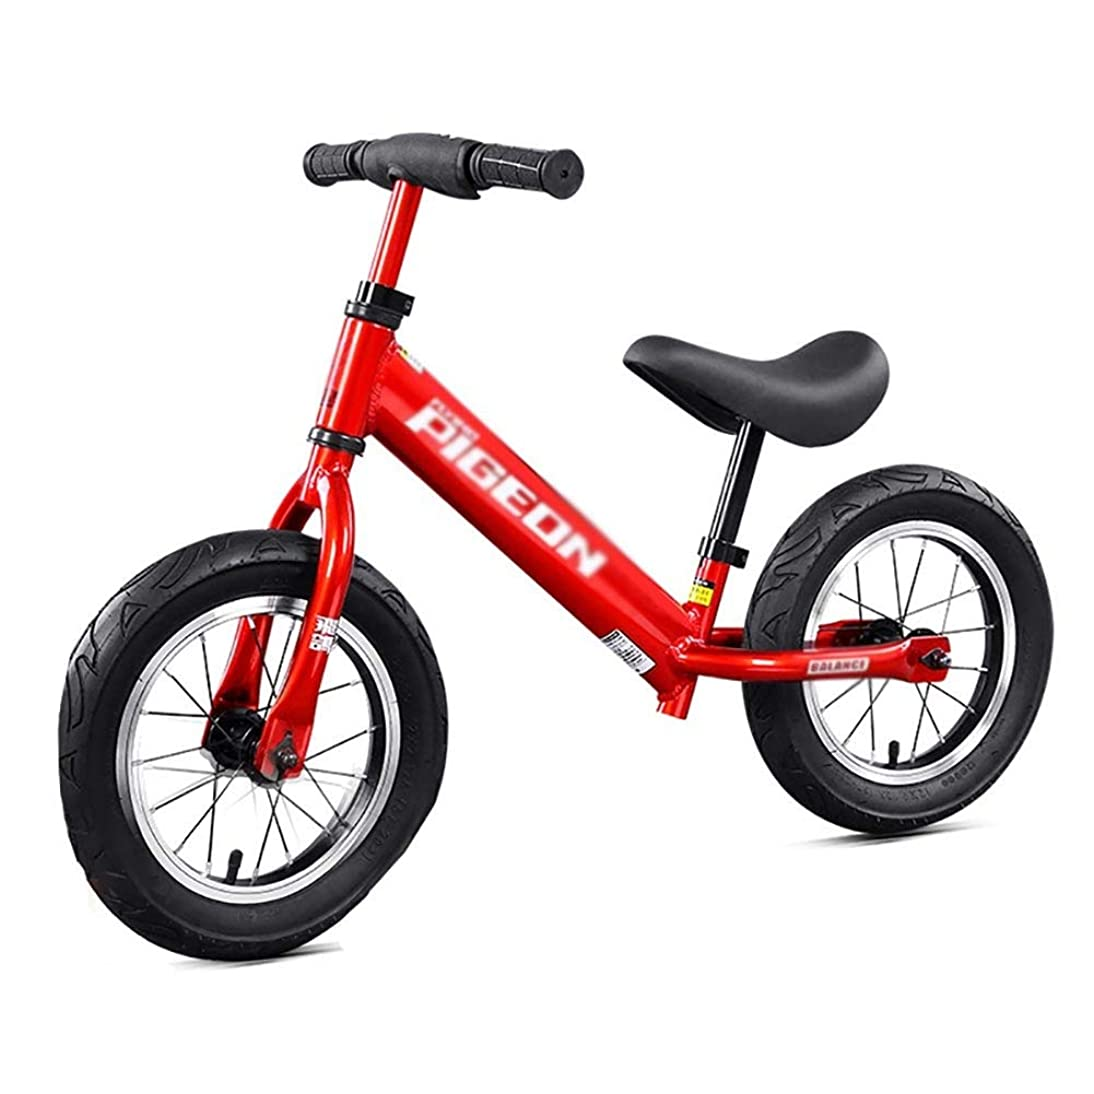 Balance Bike YXX Aluminum Alloy with Adjustable Handle & Seat, No Pedal Sport Bicycle for Kids Toddlers eedw754520463906